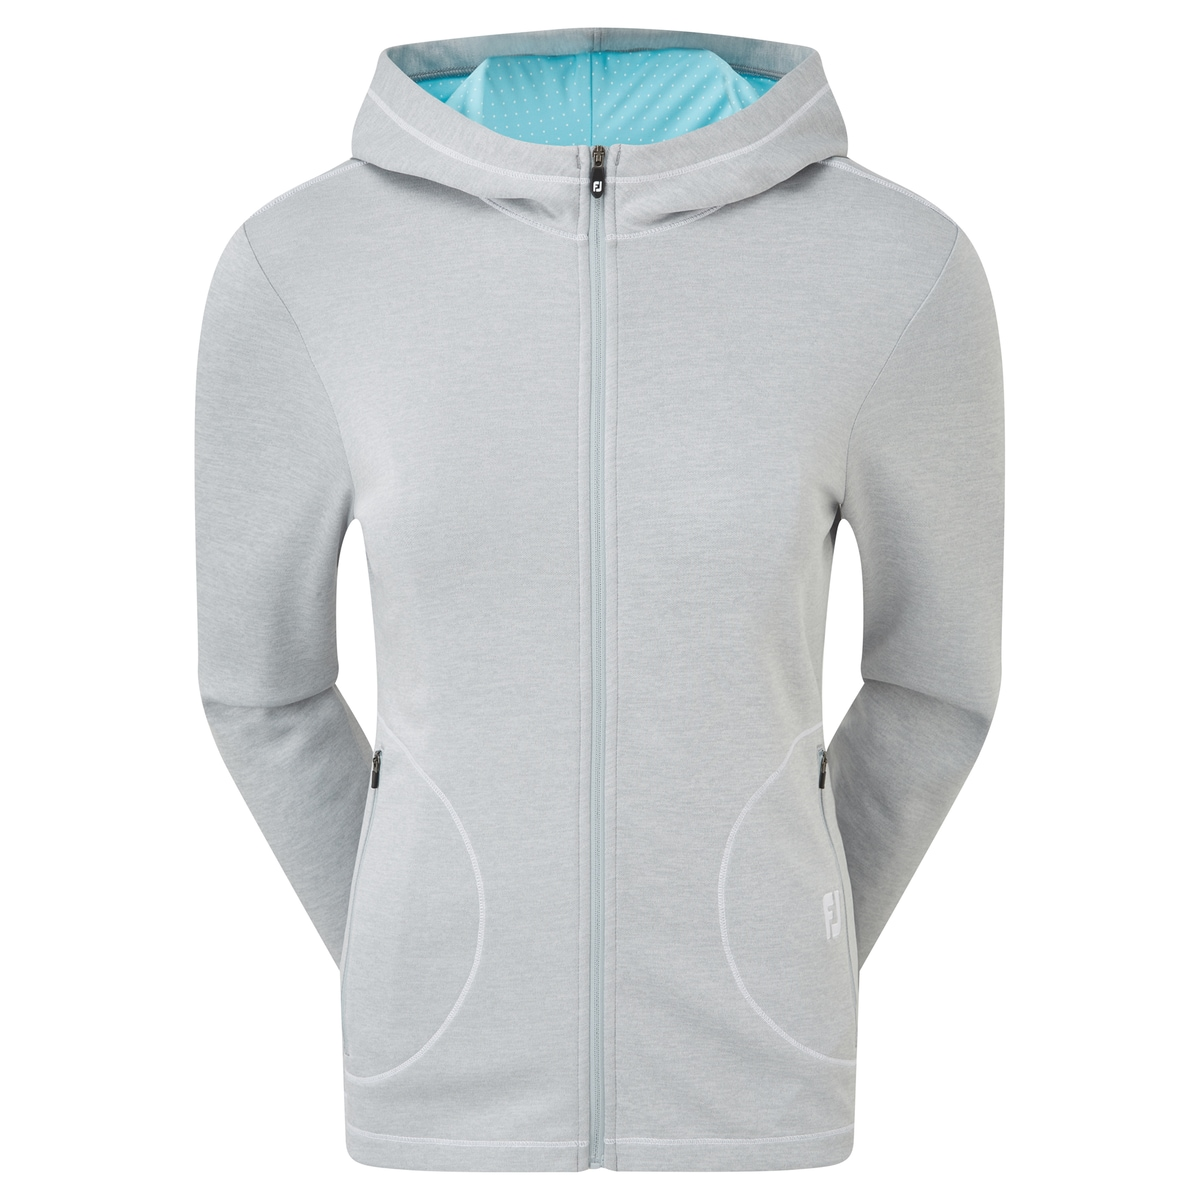 Double Layer Jersey Hoodie Women